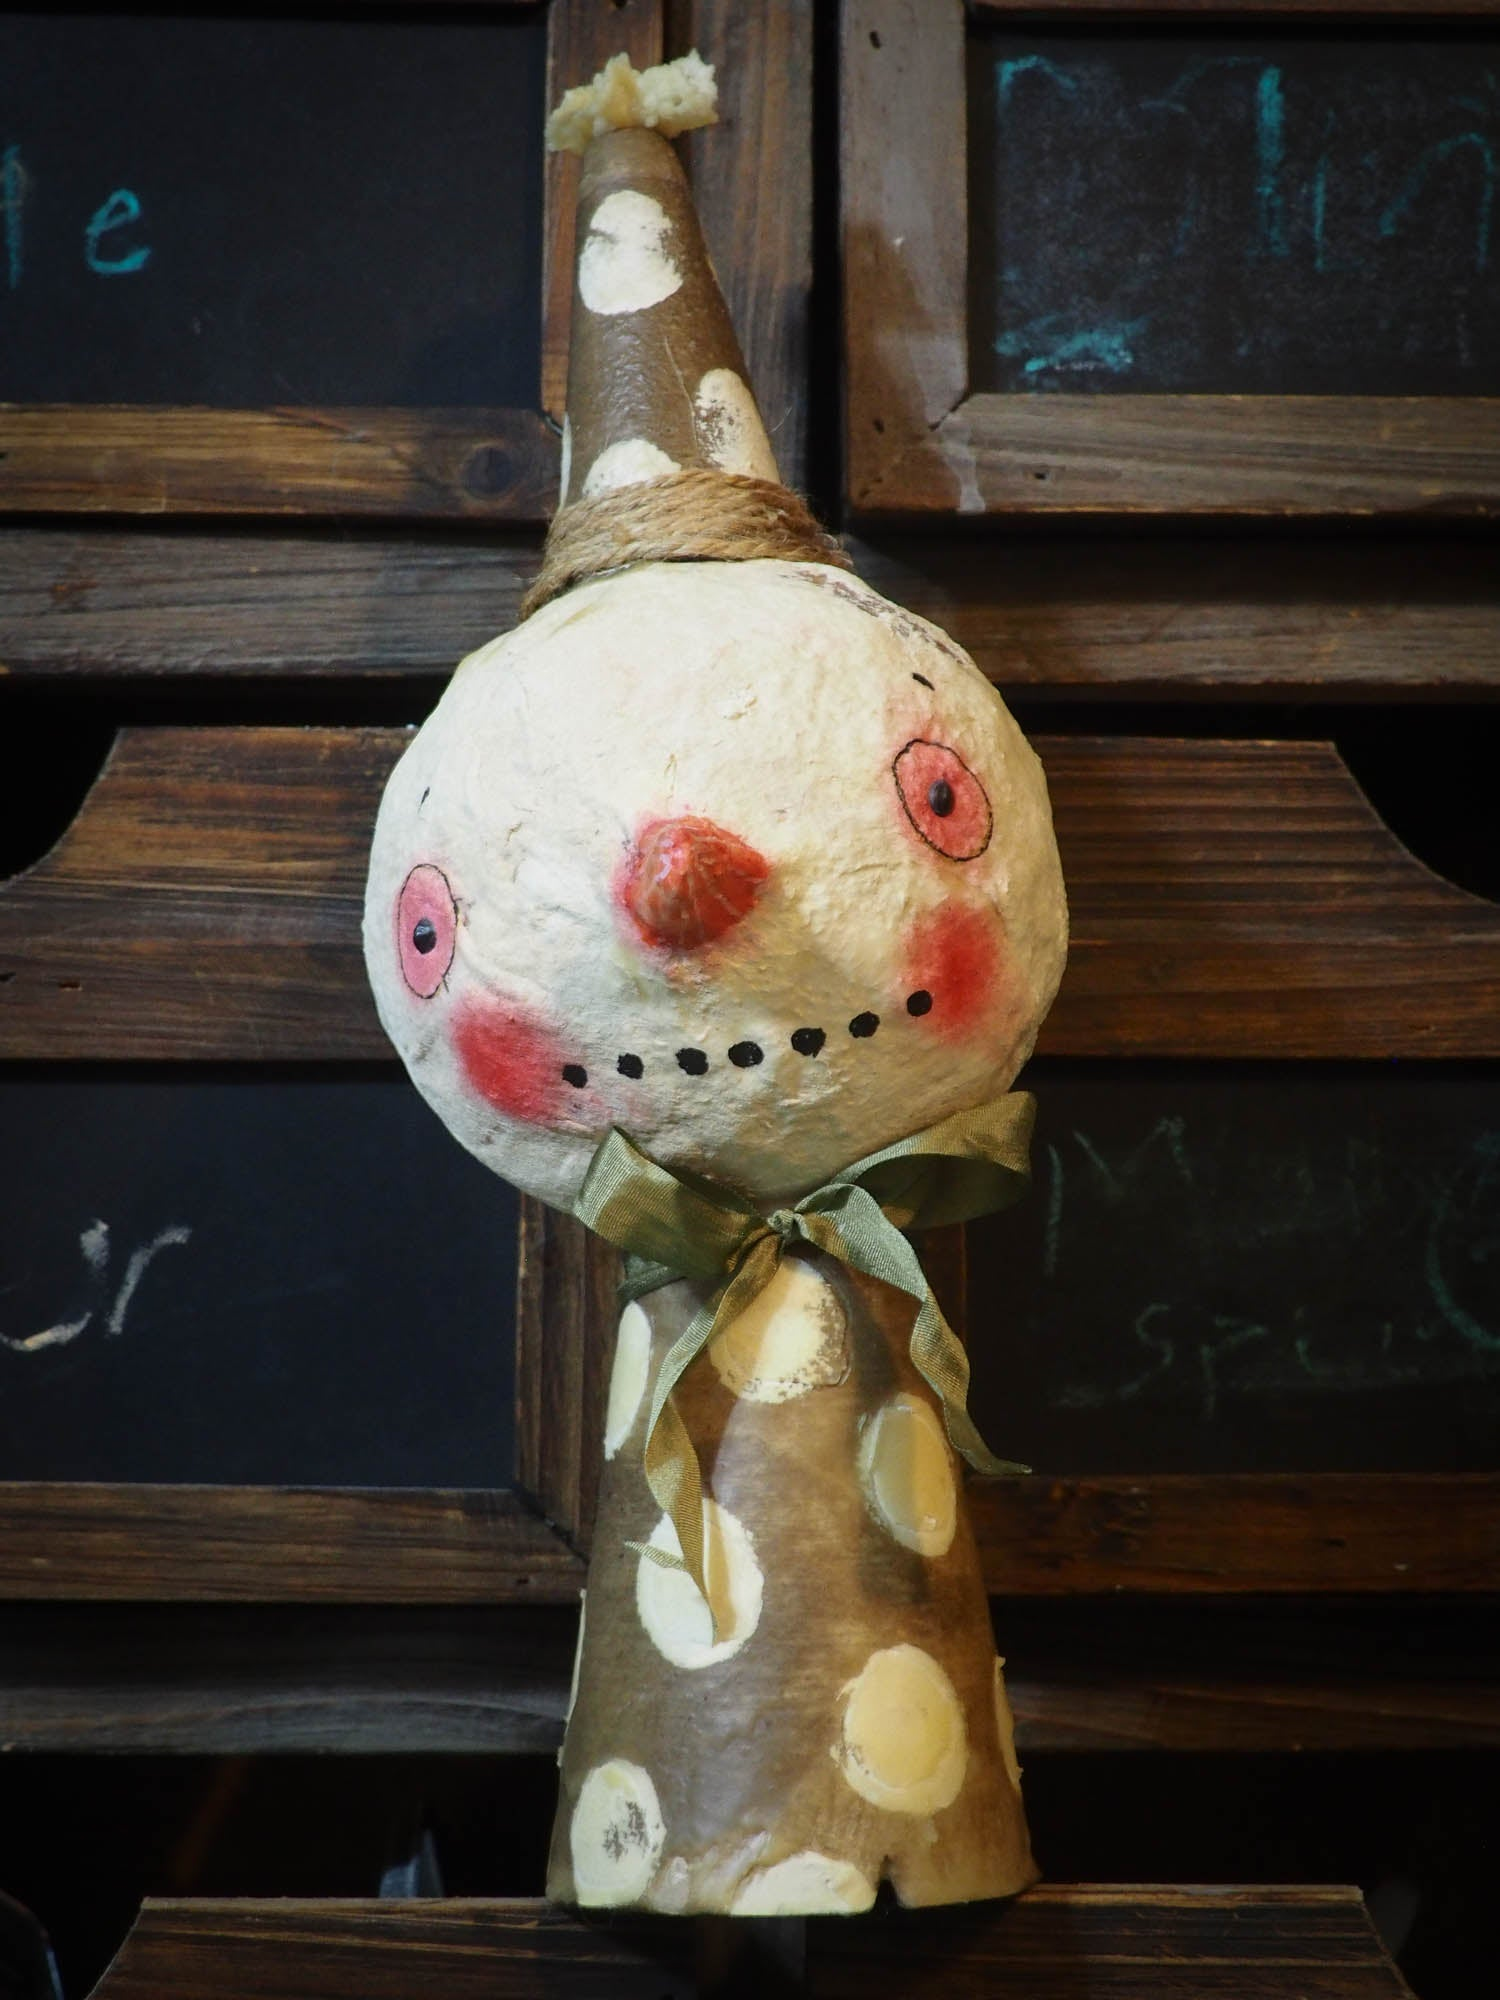 Beeswax covered snowman Christmas ornament by Danita Art, Art Doll by Danita Art